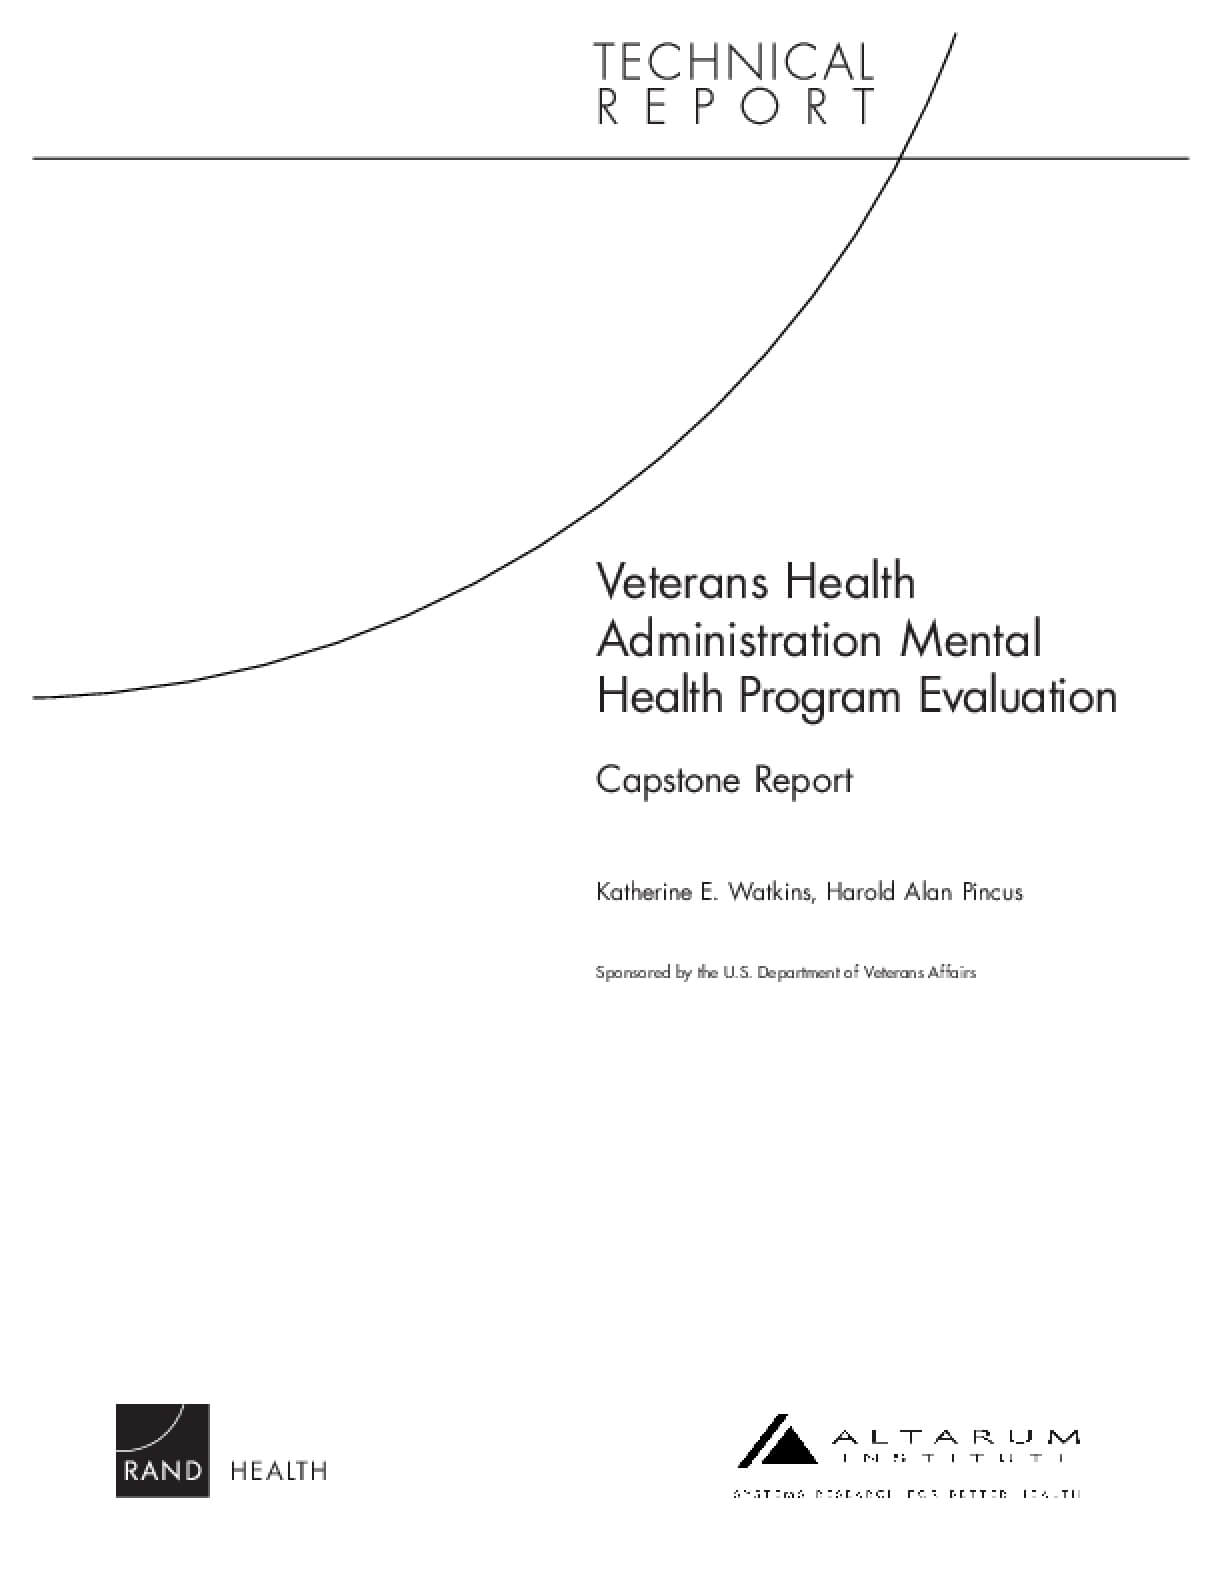 Veterans Health Administration Mental Health Program Evaluation Capstone Report